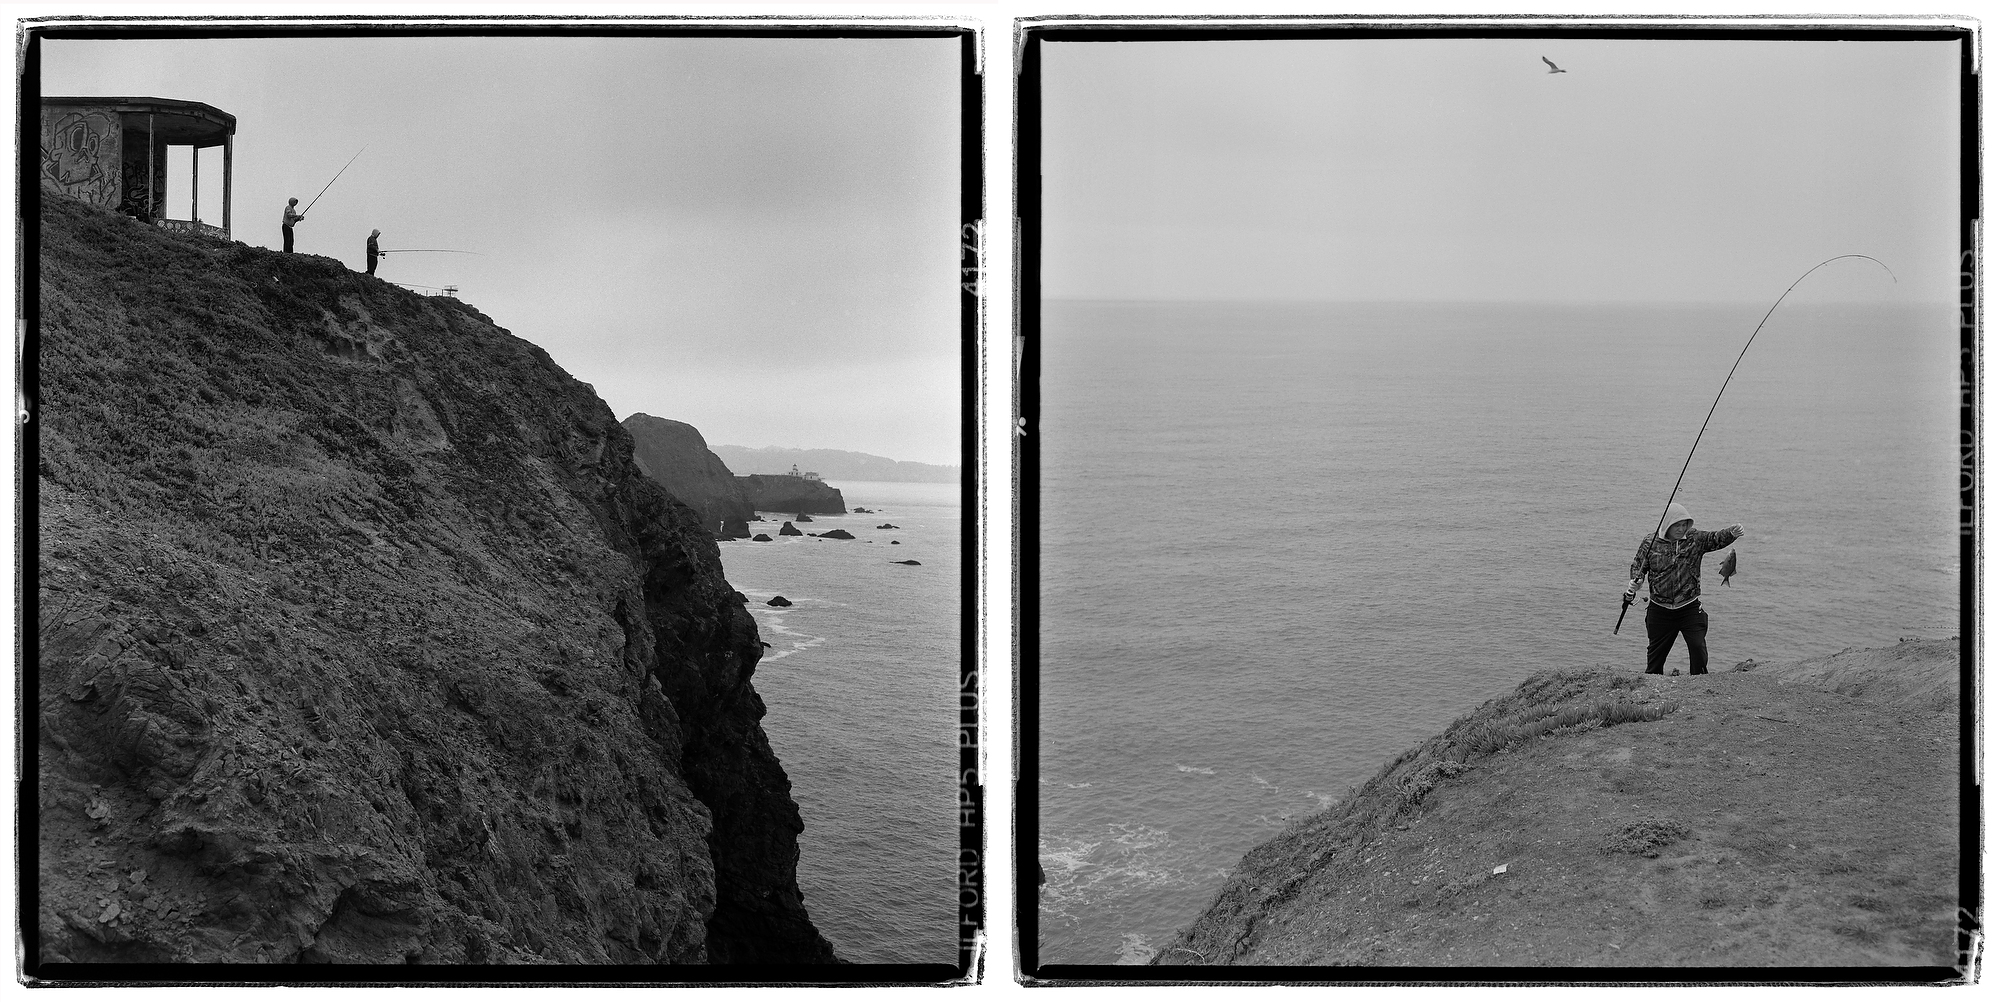 Cliff fishing - Marin Headlands, Marin County, CA